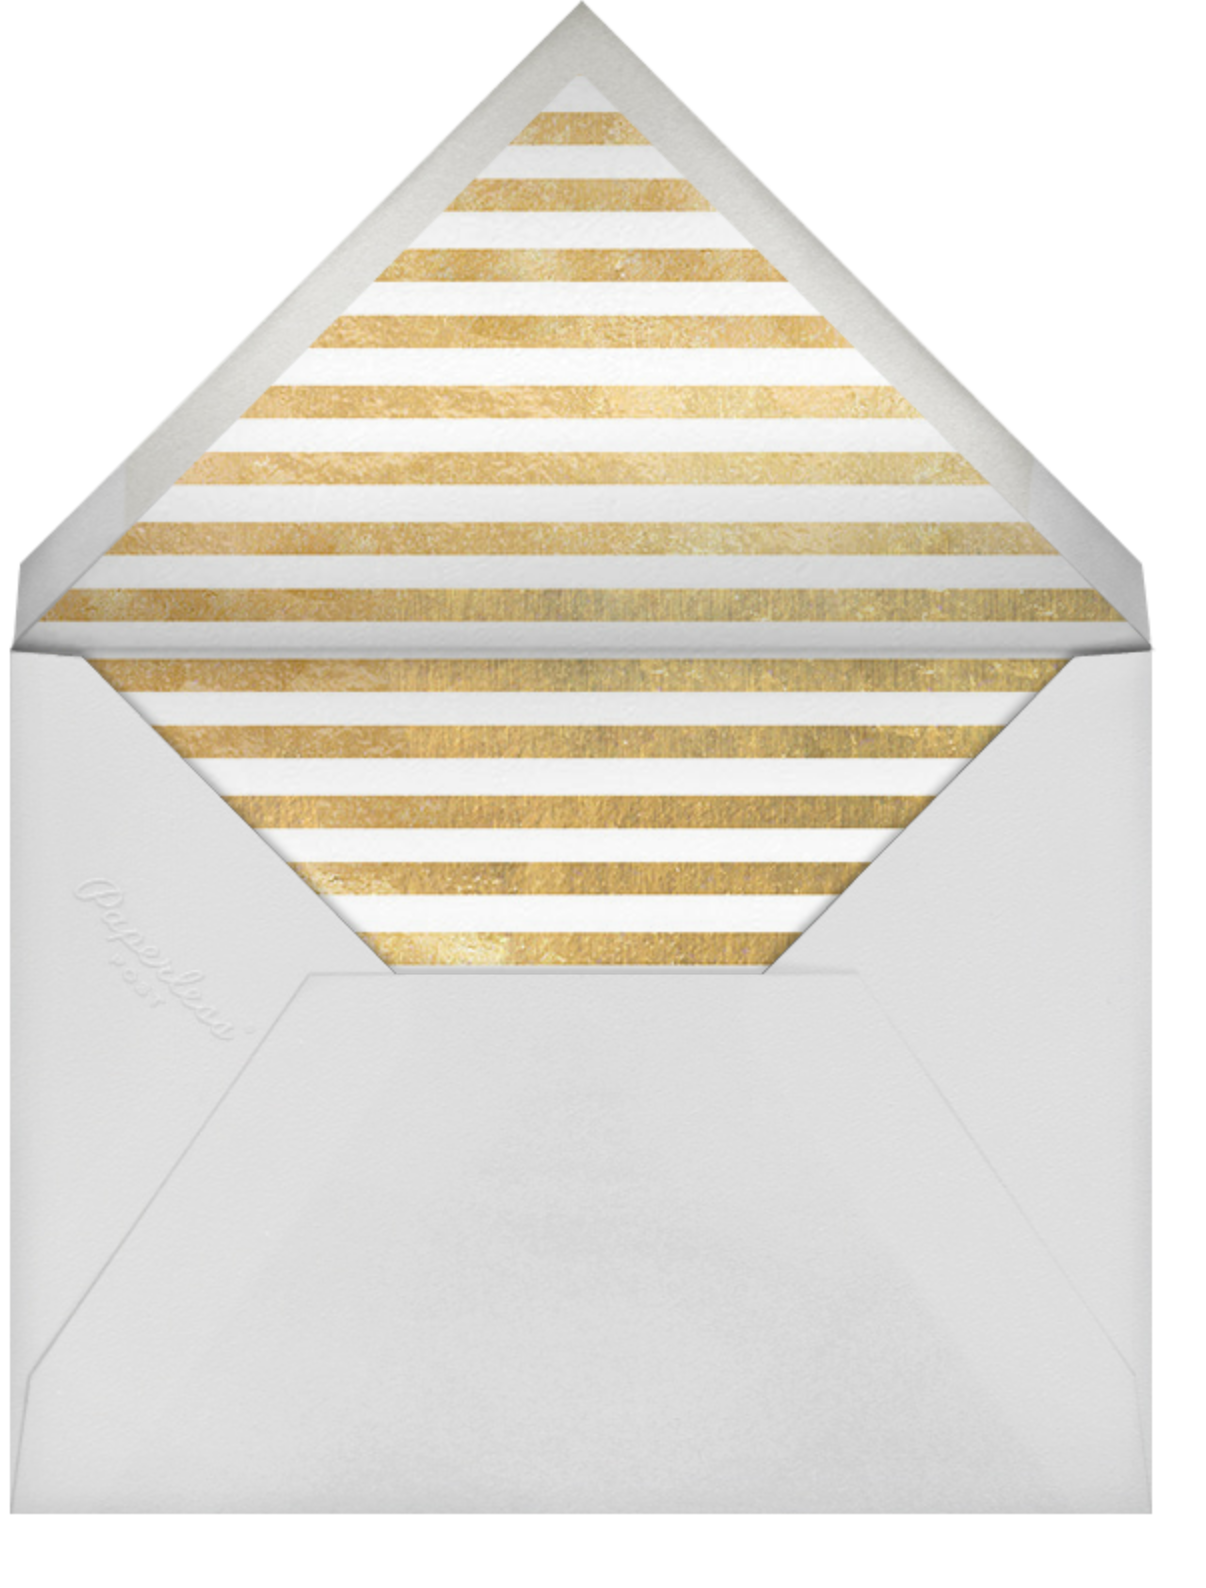 Come Celebrate - Aqua/Gold - kate spade new york - Holiday party - envelope back